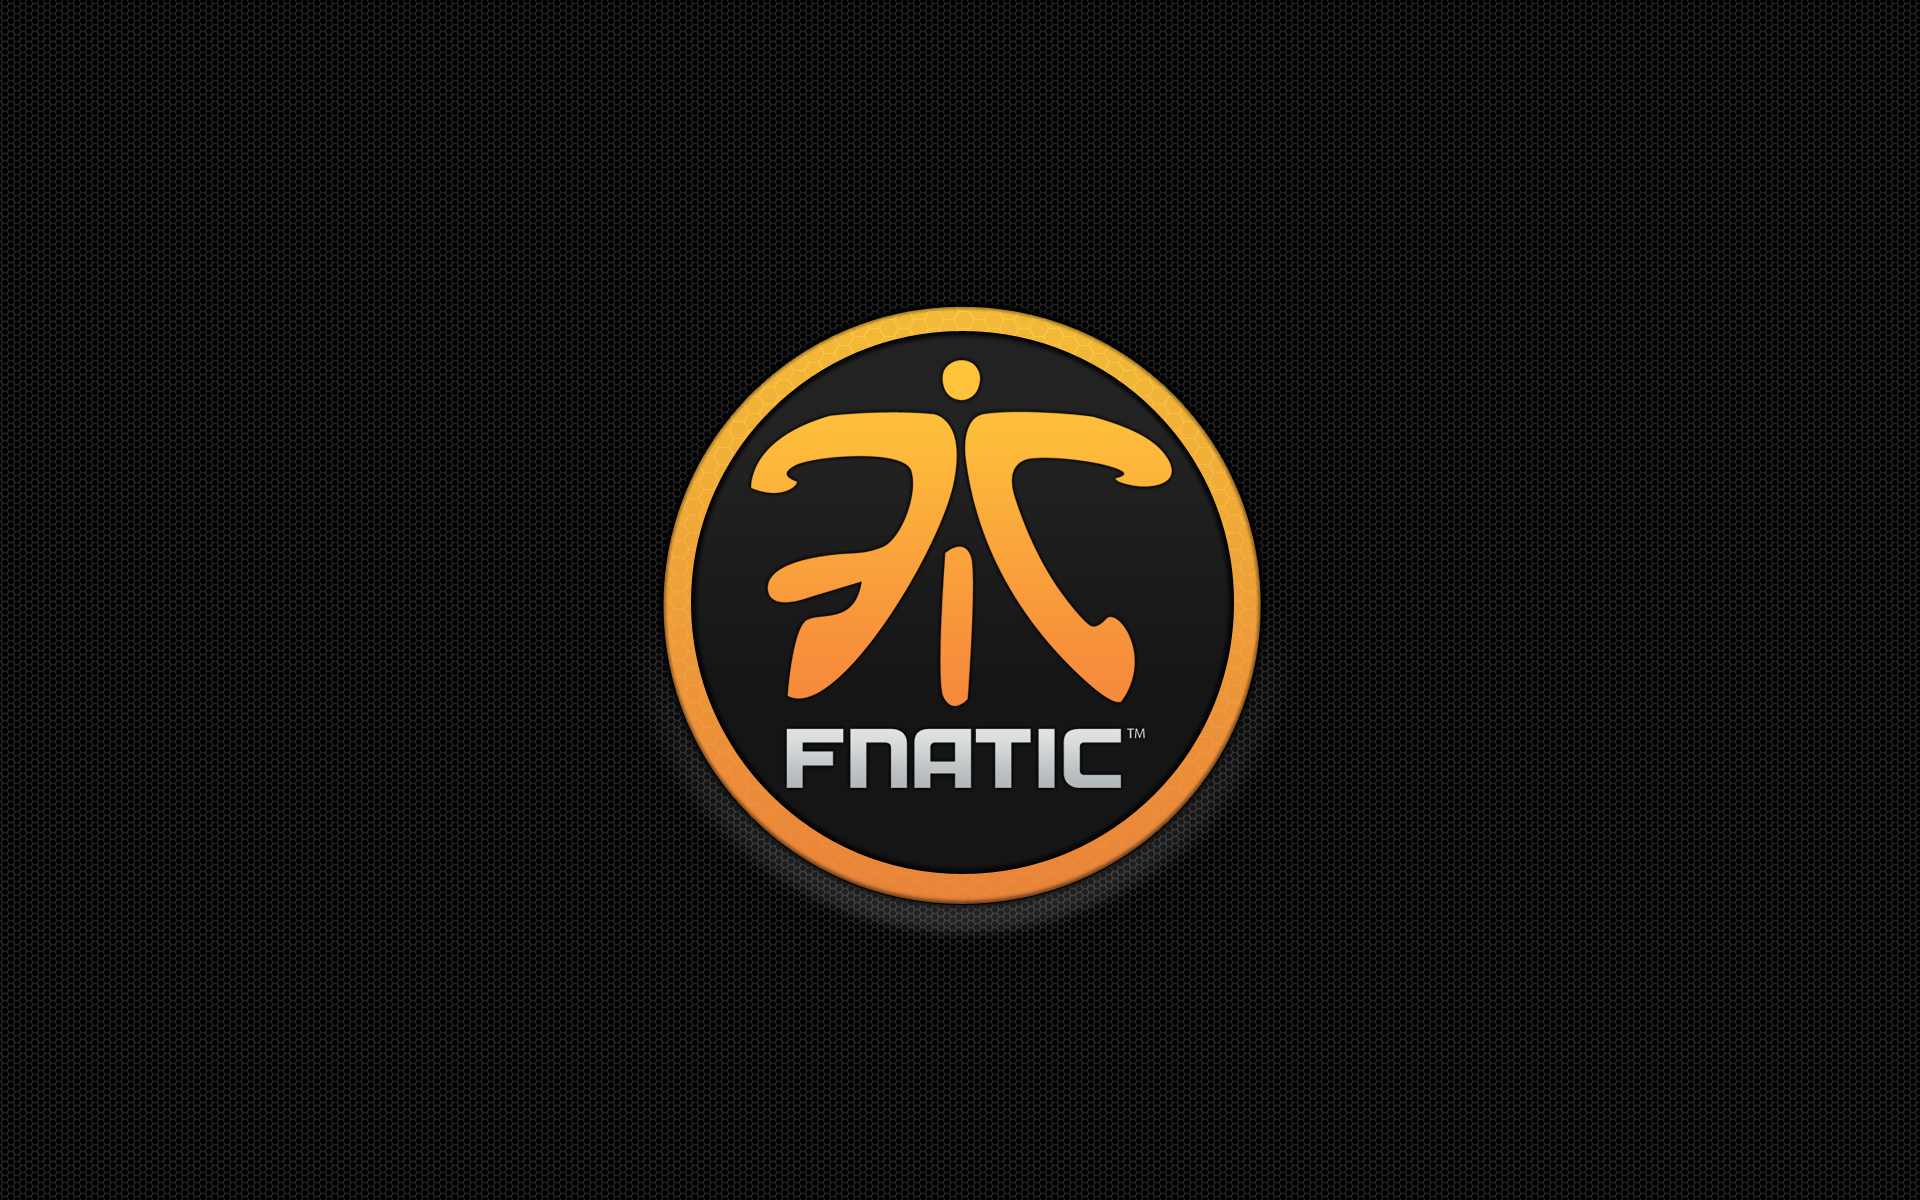 fnatic Wallpaper by Yeky1337 on DeviantArt